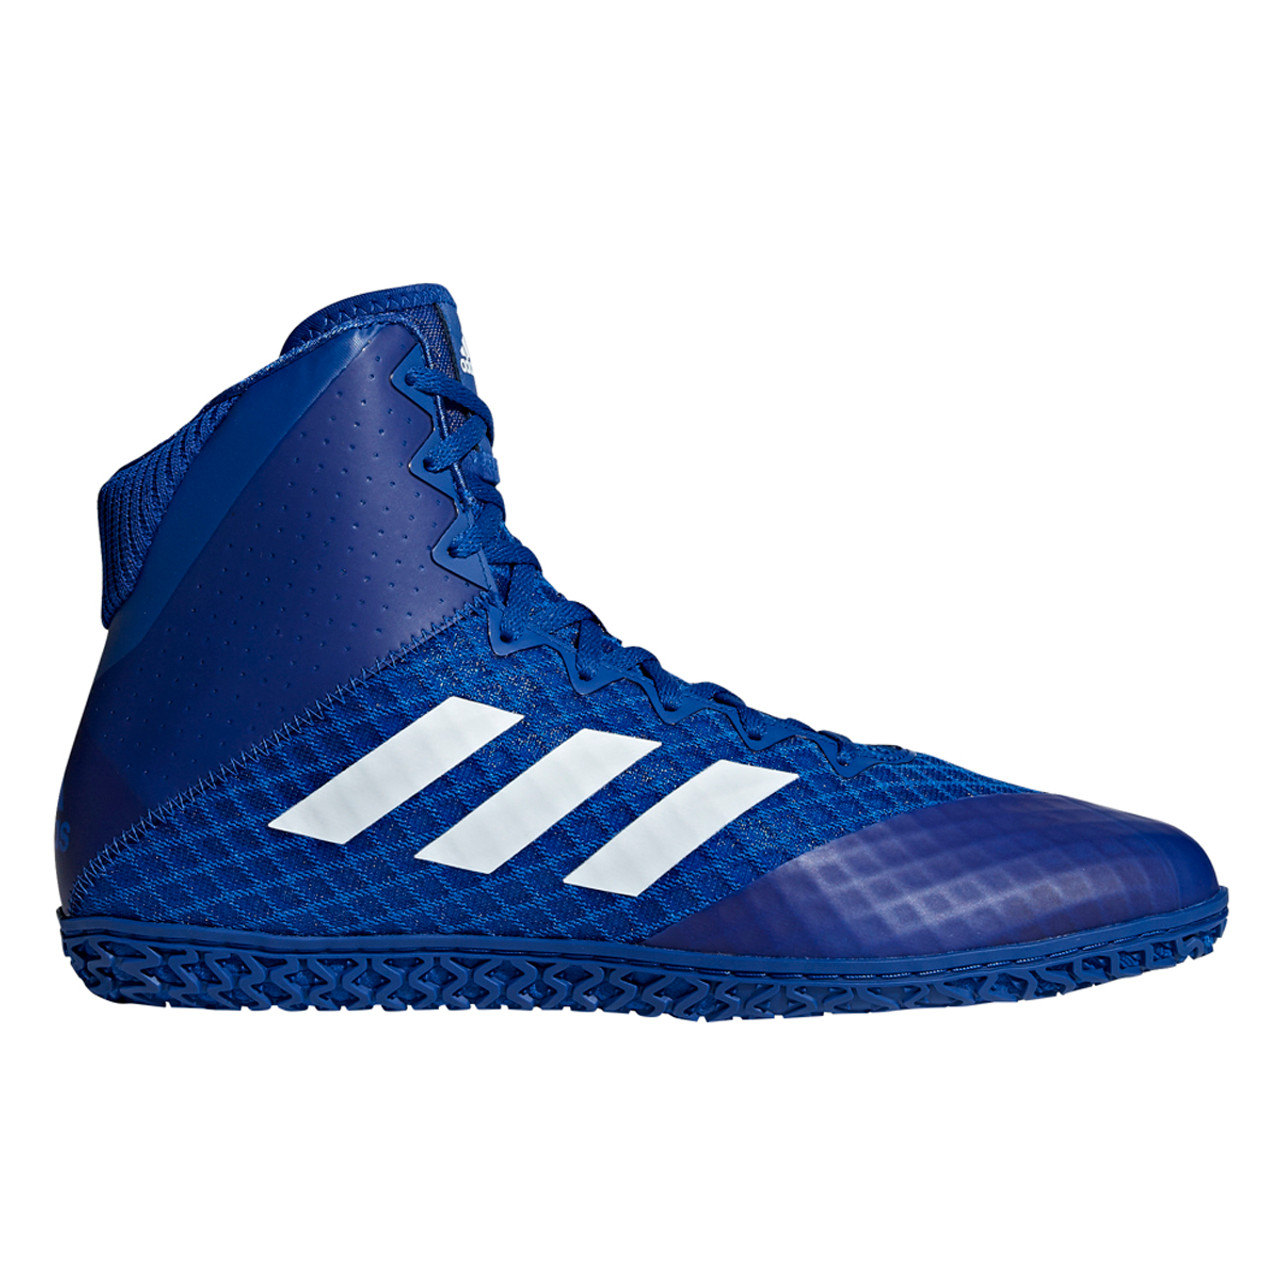 b12ef7edcf429 Adidas Mat Wizard 4 Men s Wrestling Shoes AC6973 - Royal